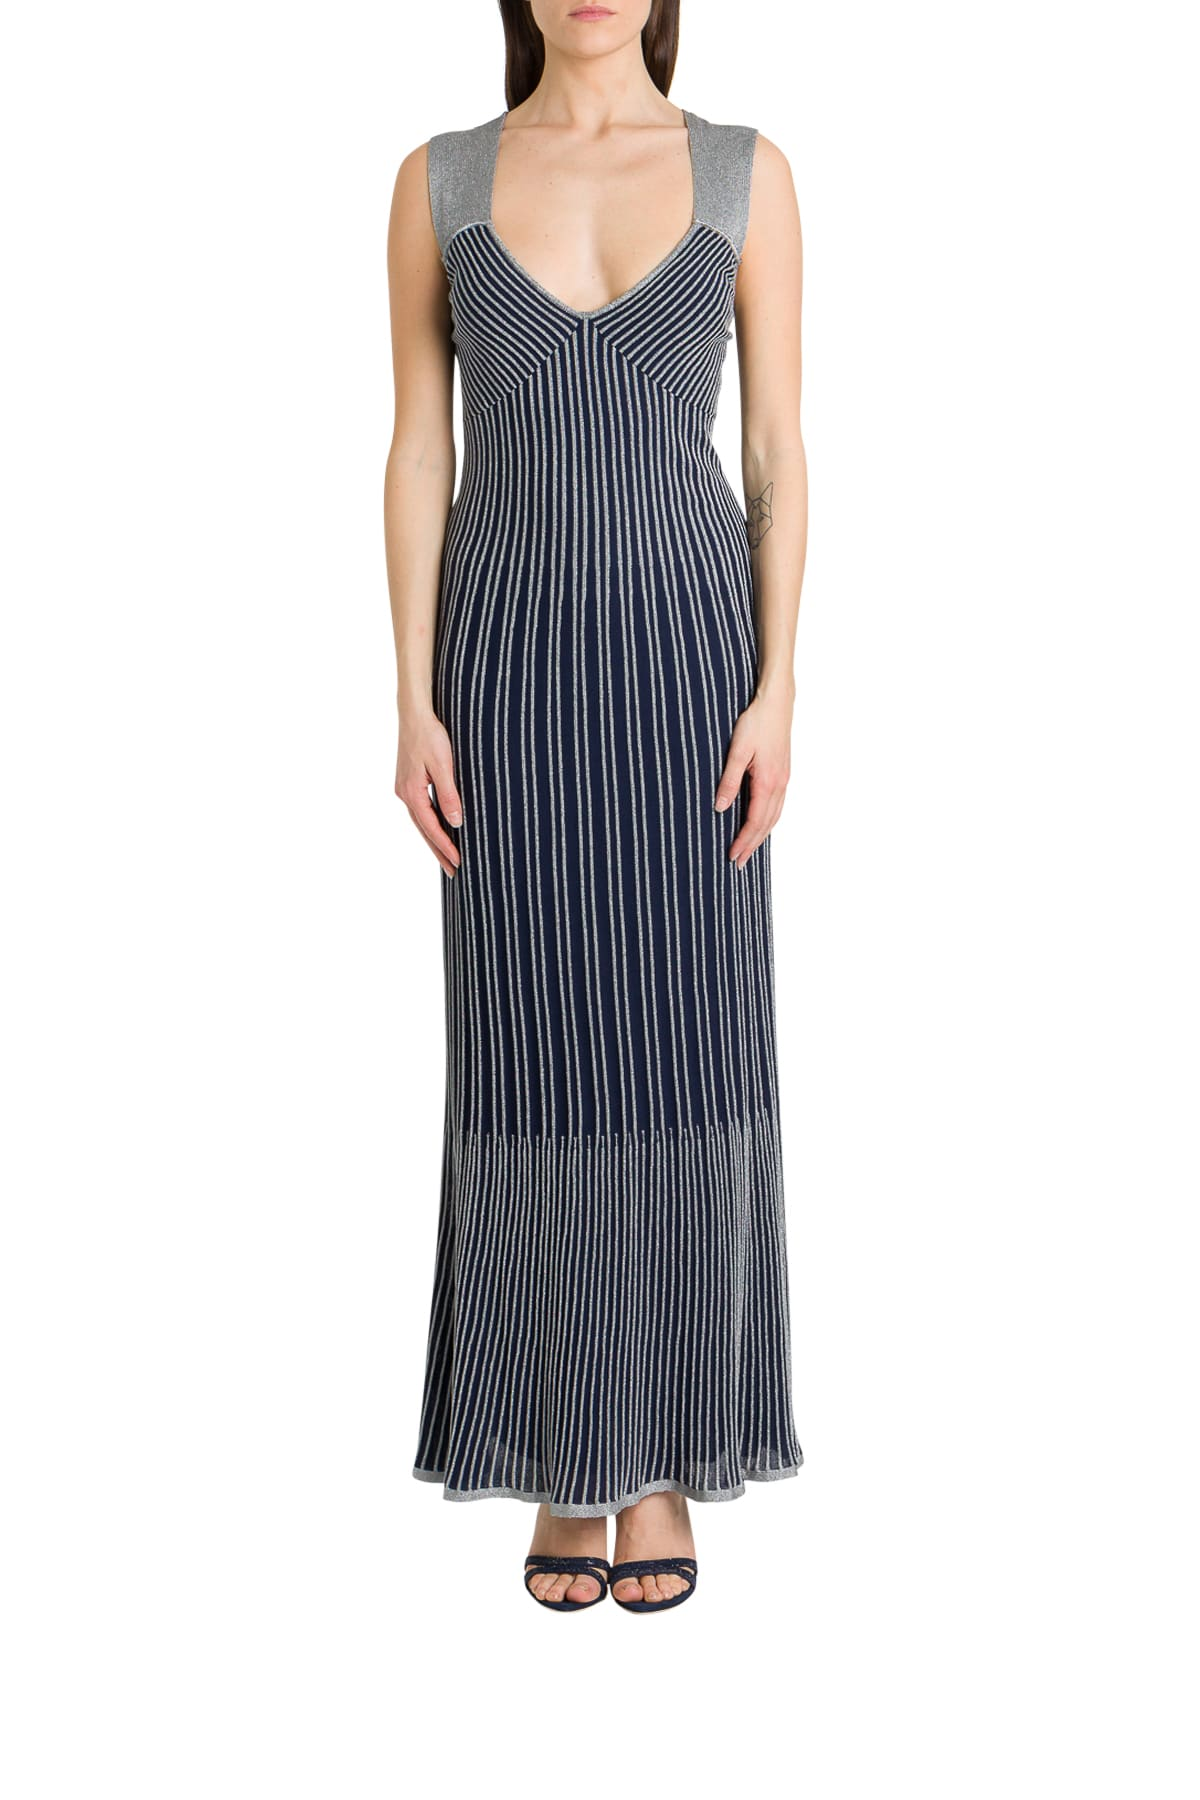 Buy M Missoni Maxi Dress In Lurex Knit online, shop M Missoni with free shipping